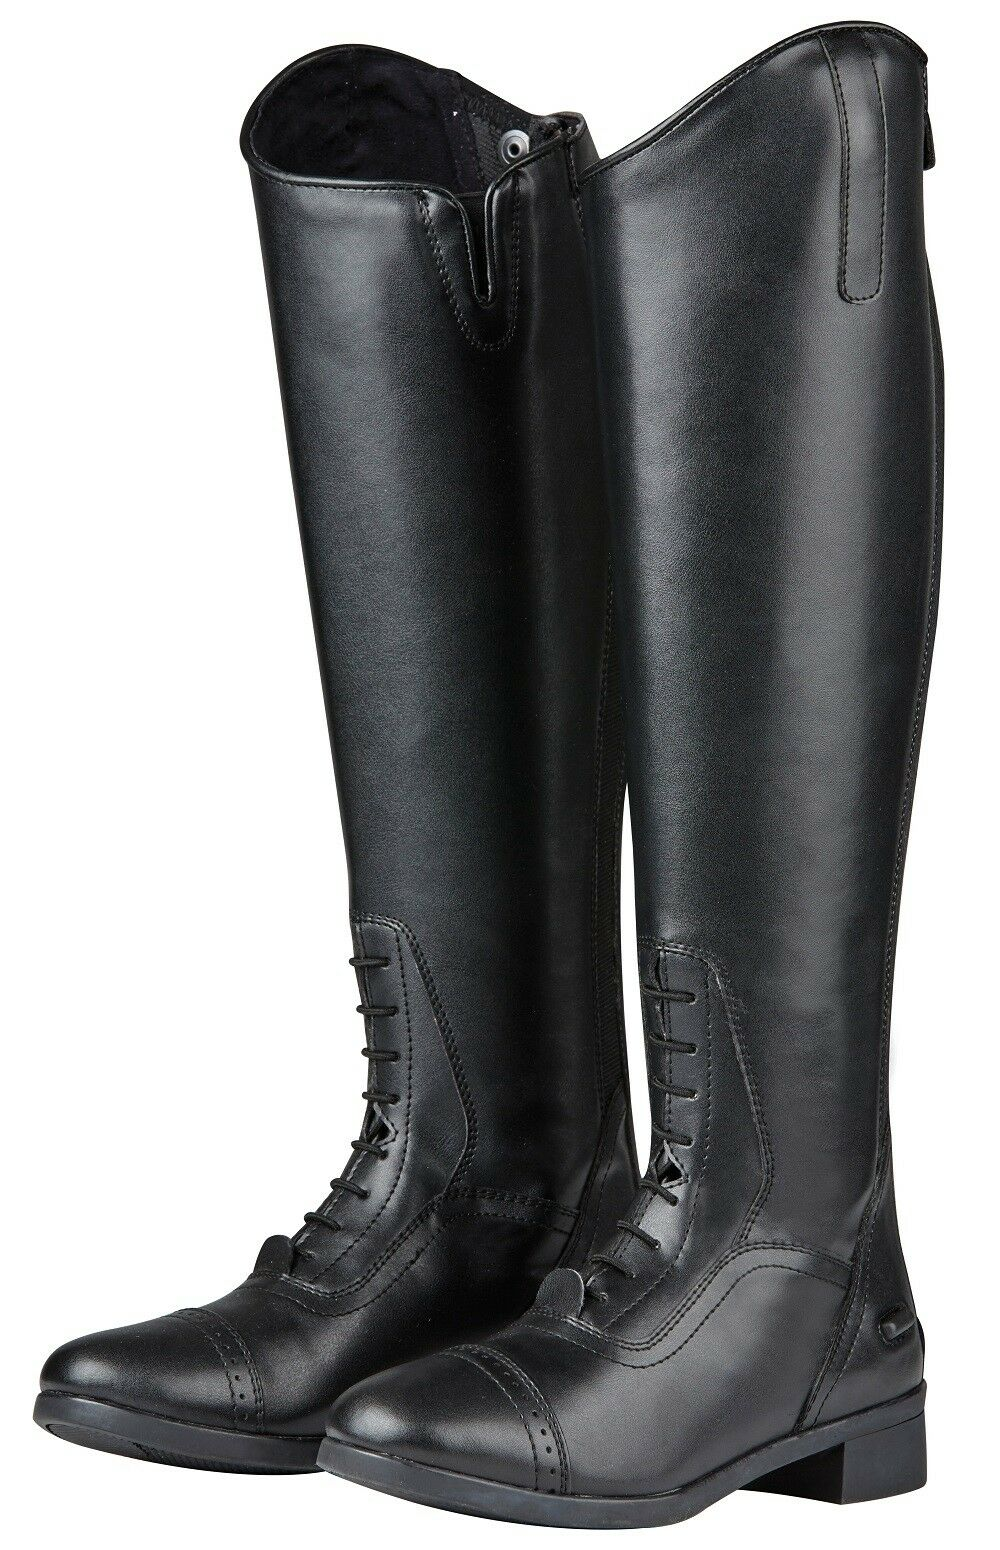 Saxon Syntovia Tall Boot LACED FIELD Show  Dressage Horse Riding Boots Zip ALL S